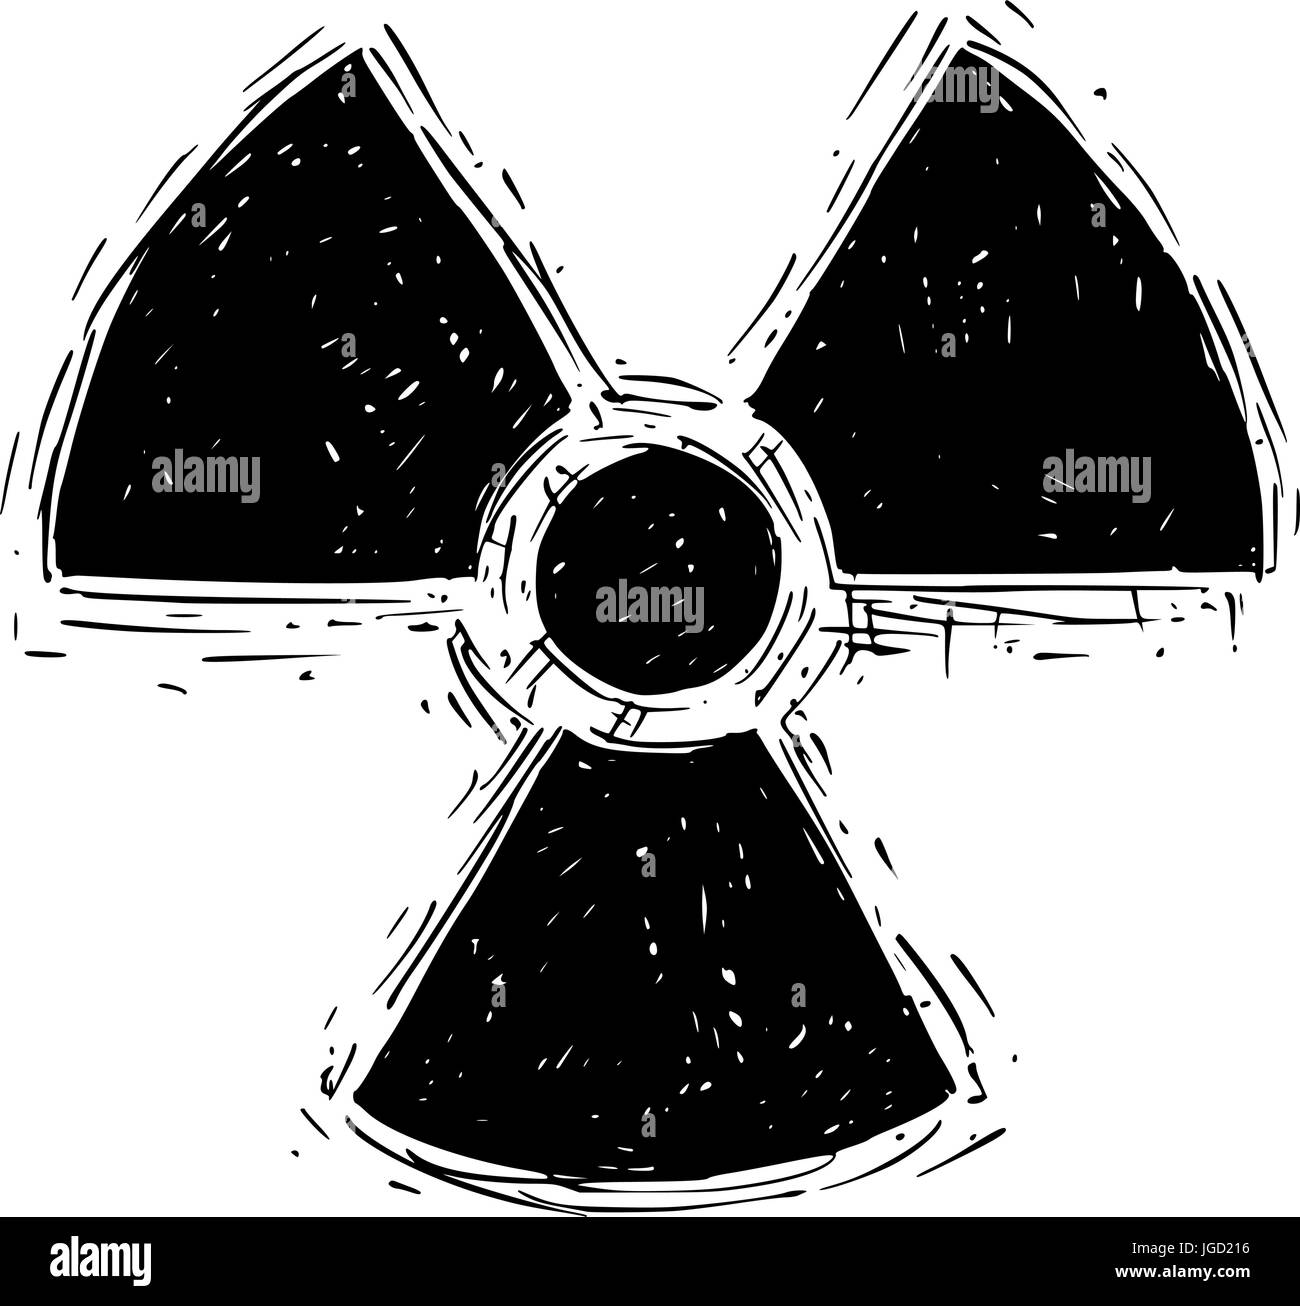 Vector doodle hand drawing illustration of nuclear radiation symbol. - Stock Vector